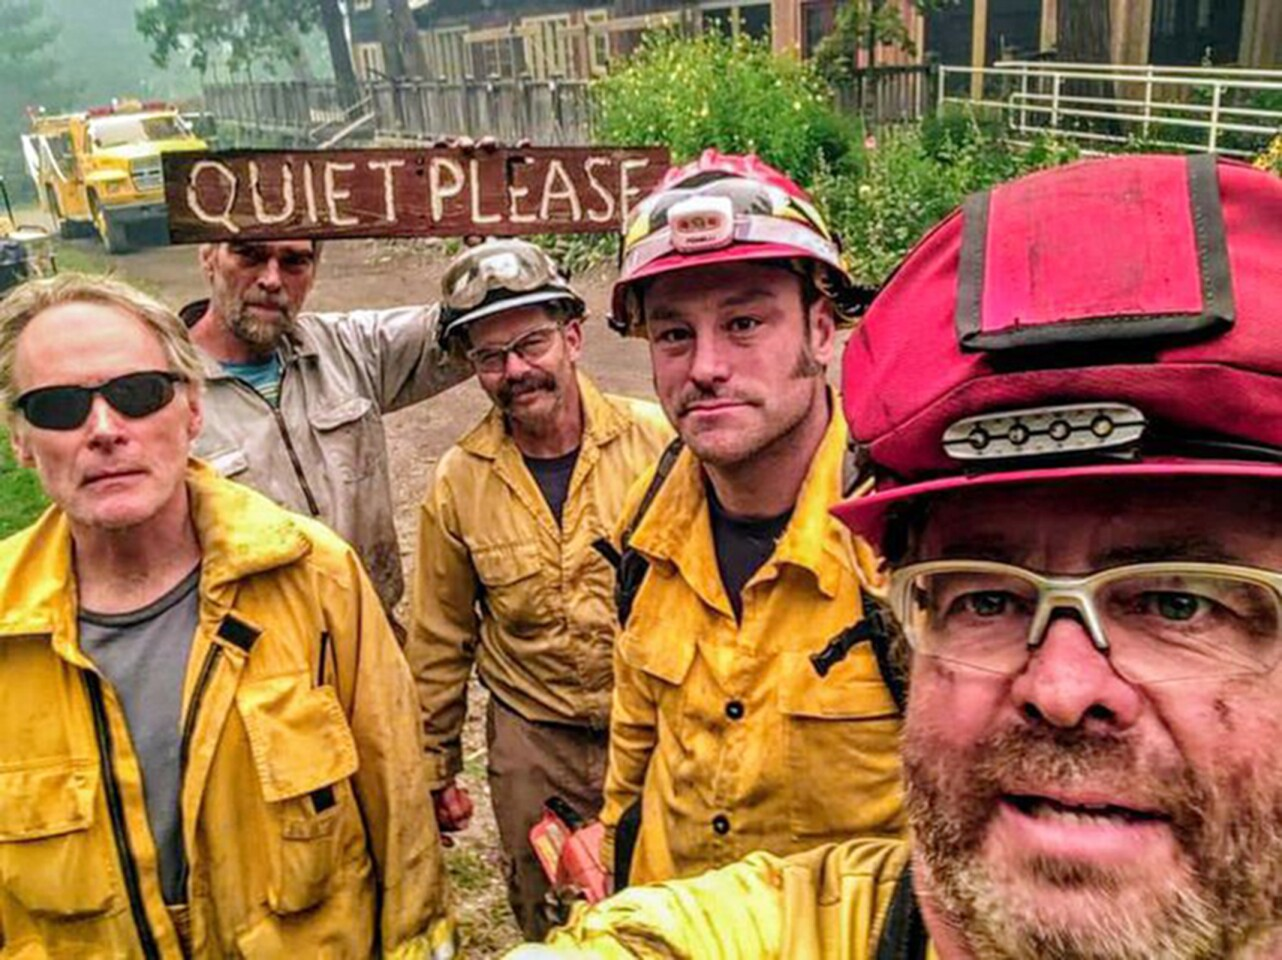 Five Firefighters work to save structures at Breitenbush Hot Springs.